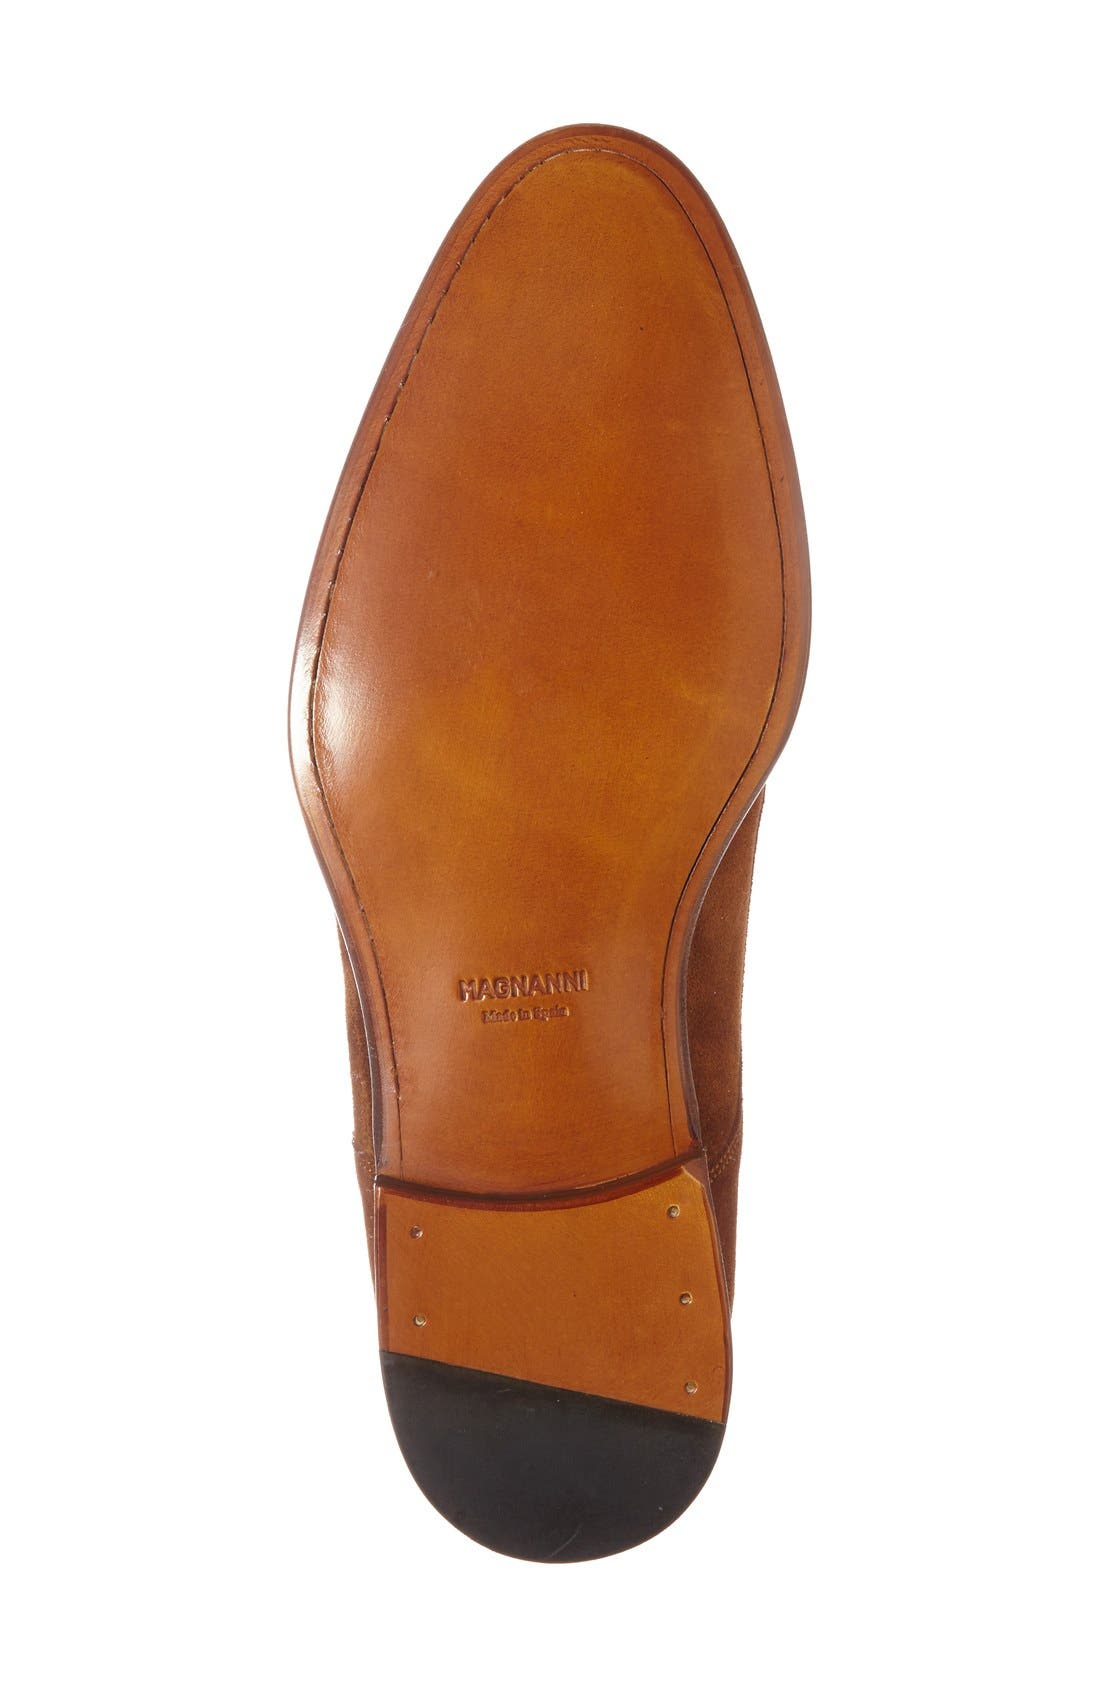 Alternate Image 4  - Magnanni 'Tomas' Double Monk Strap Shoe (Men)